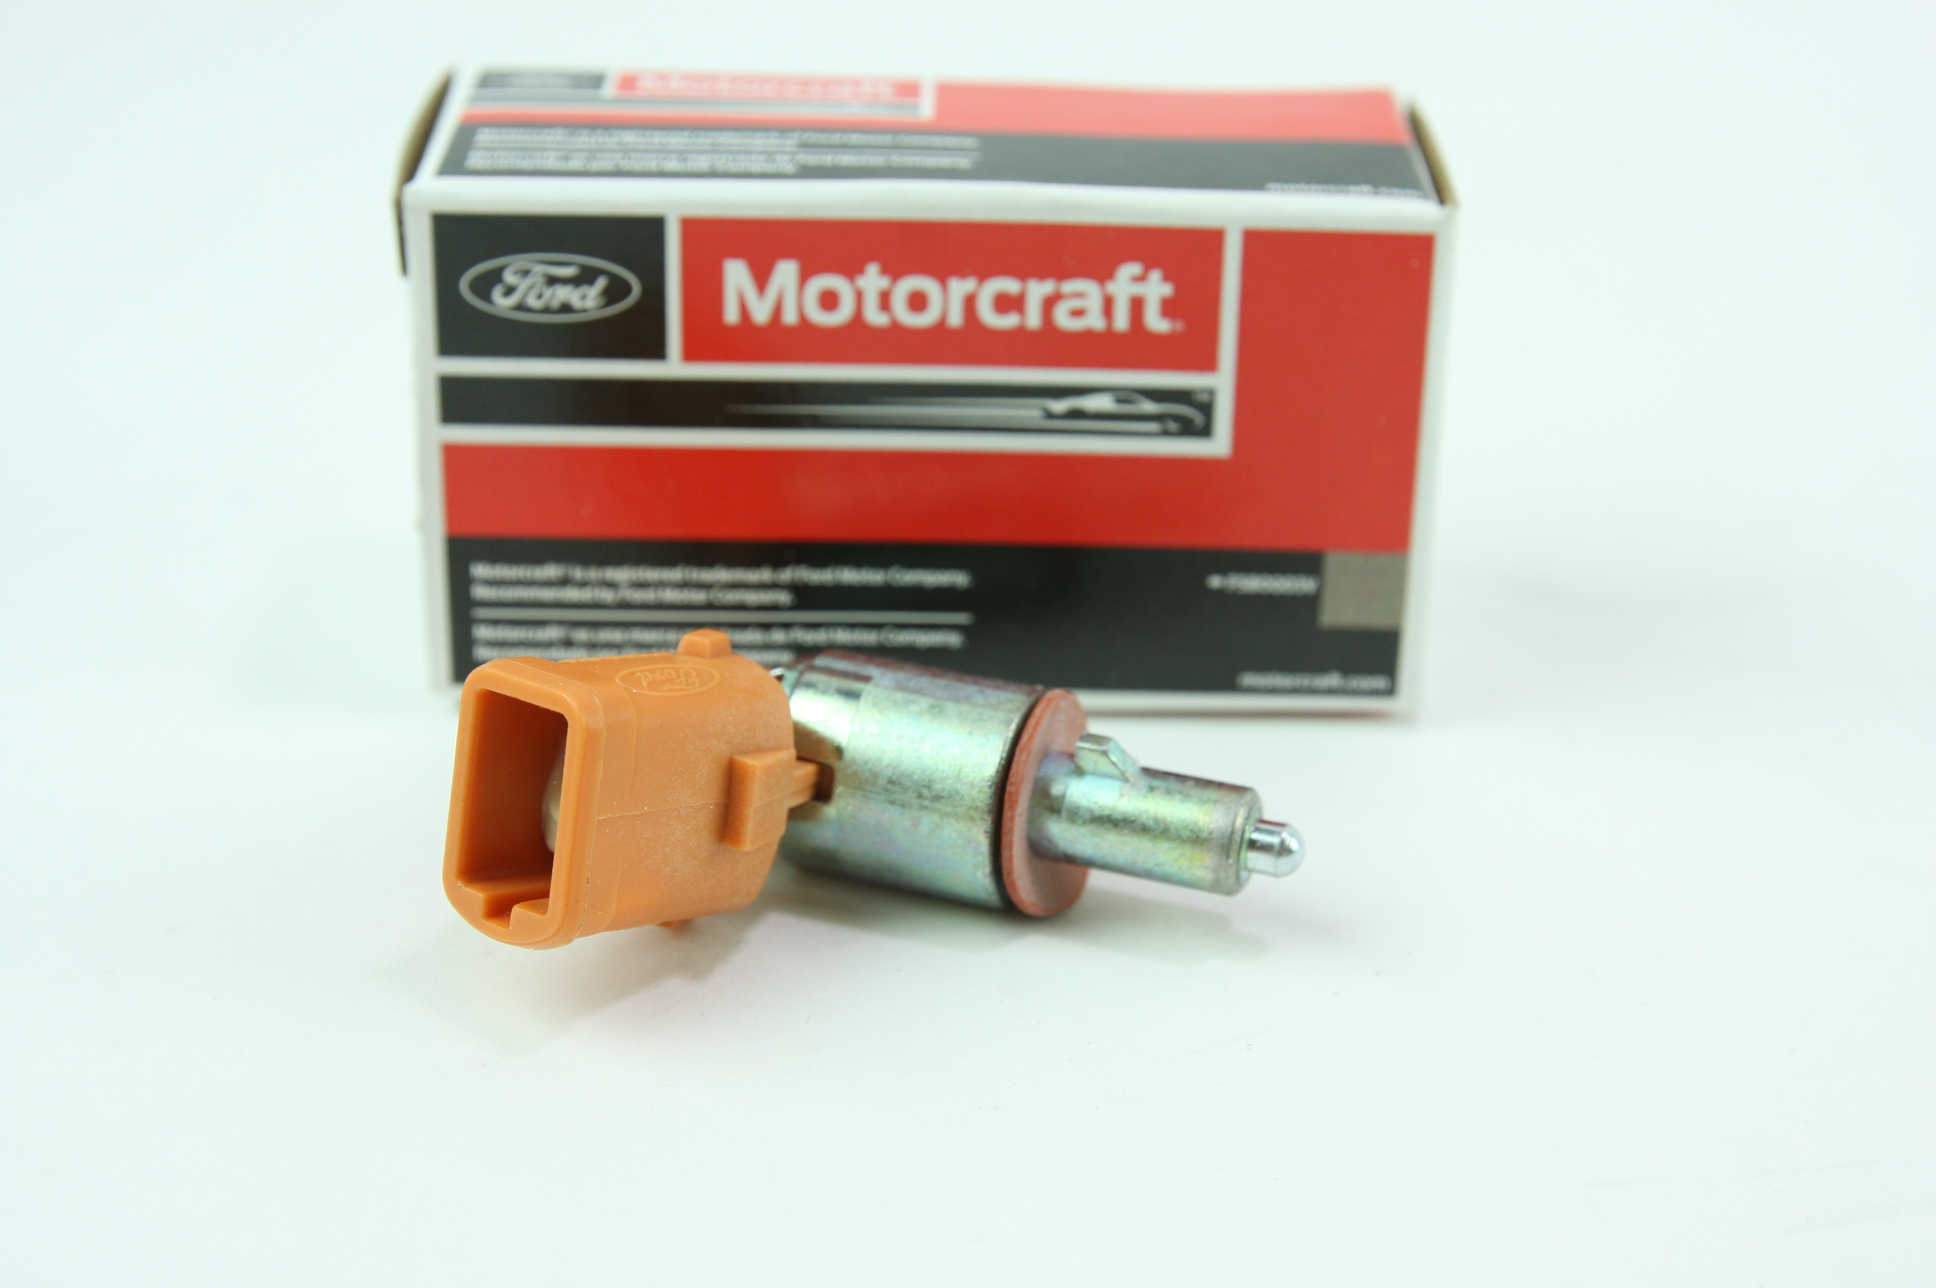 New Genuine OEM Motorcraft SW-5854 Door Open Warning Sensor Ford XF2Z14018AD - image 1